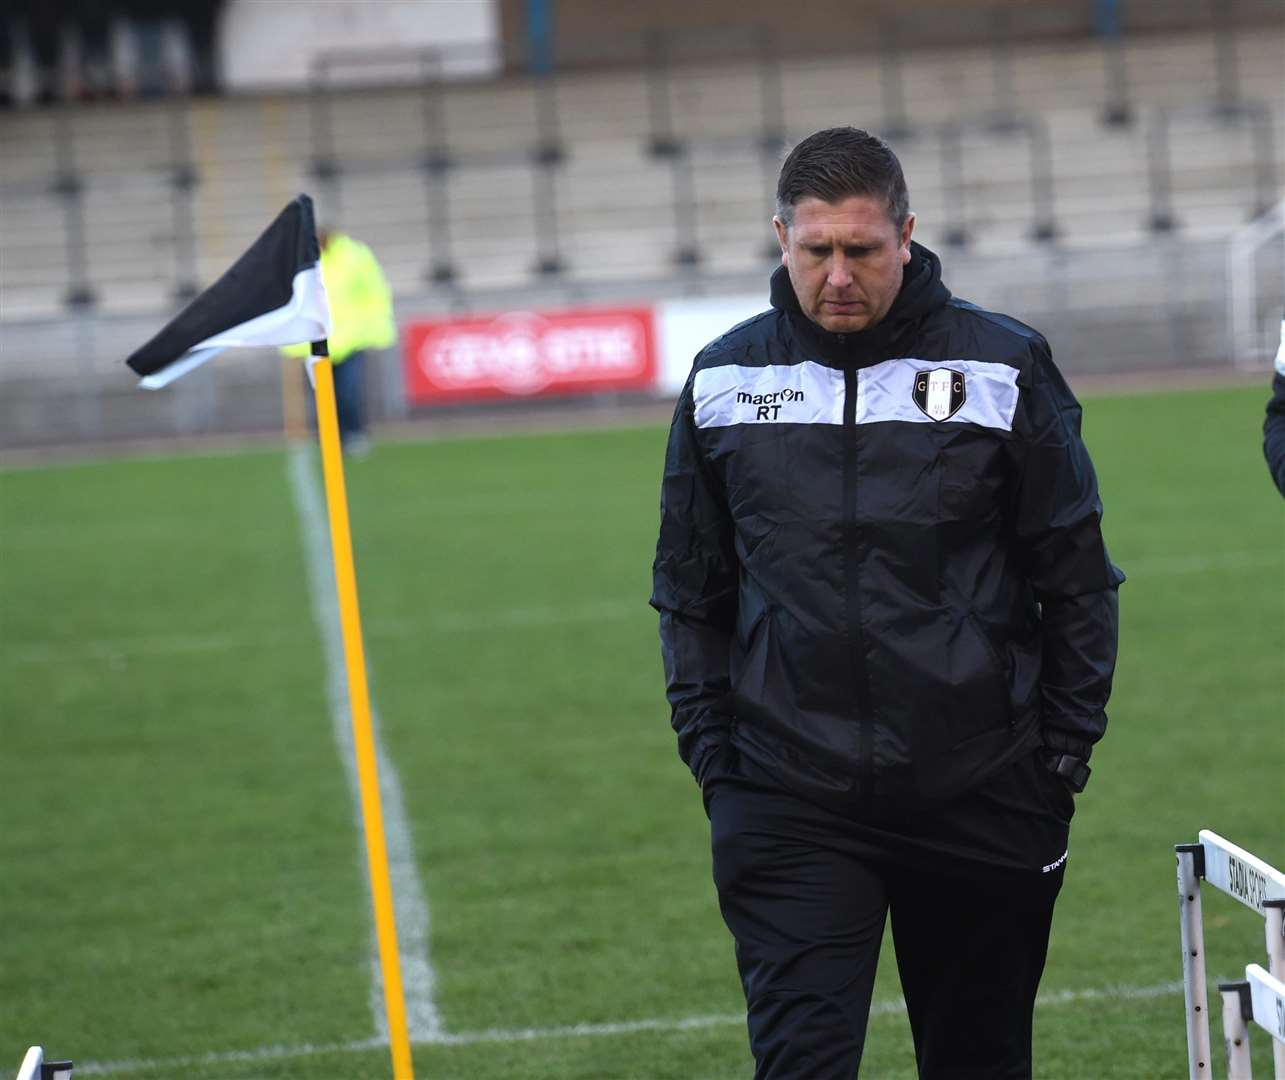 Grantham Town manager Richard Thomas. Photo: Toby Roberts (6924967)